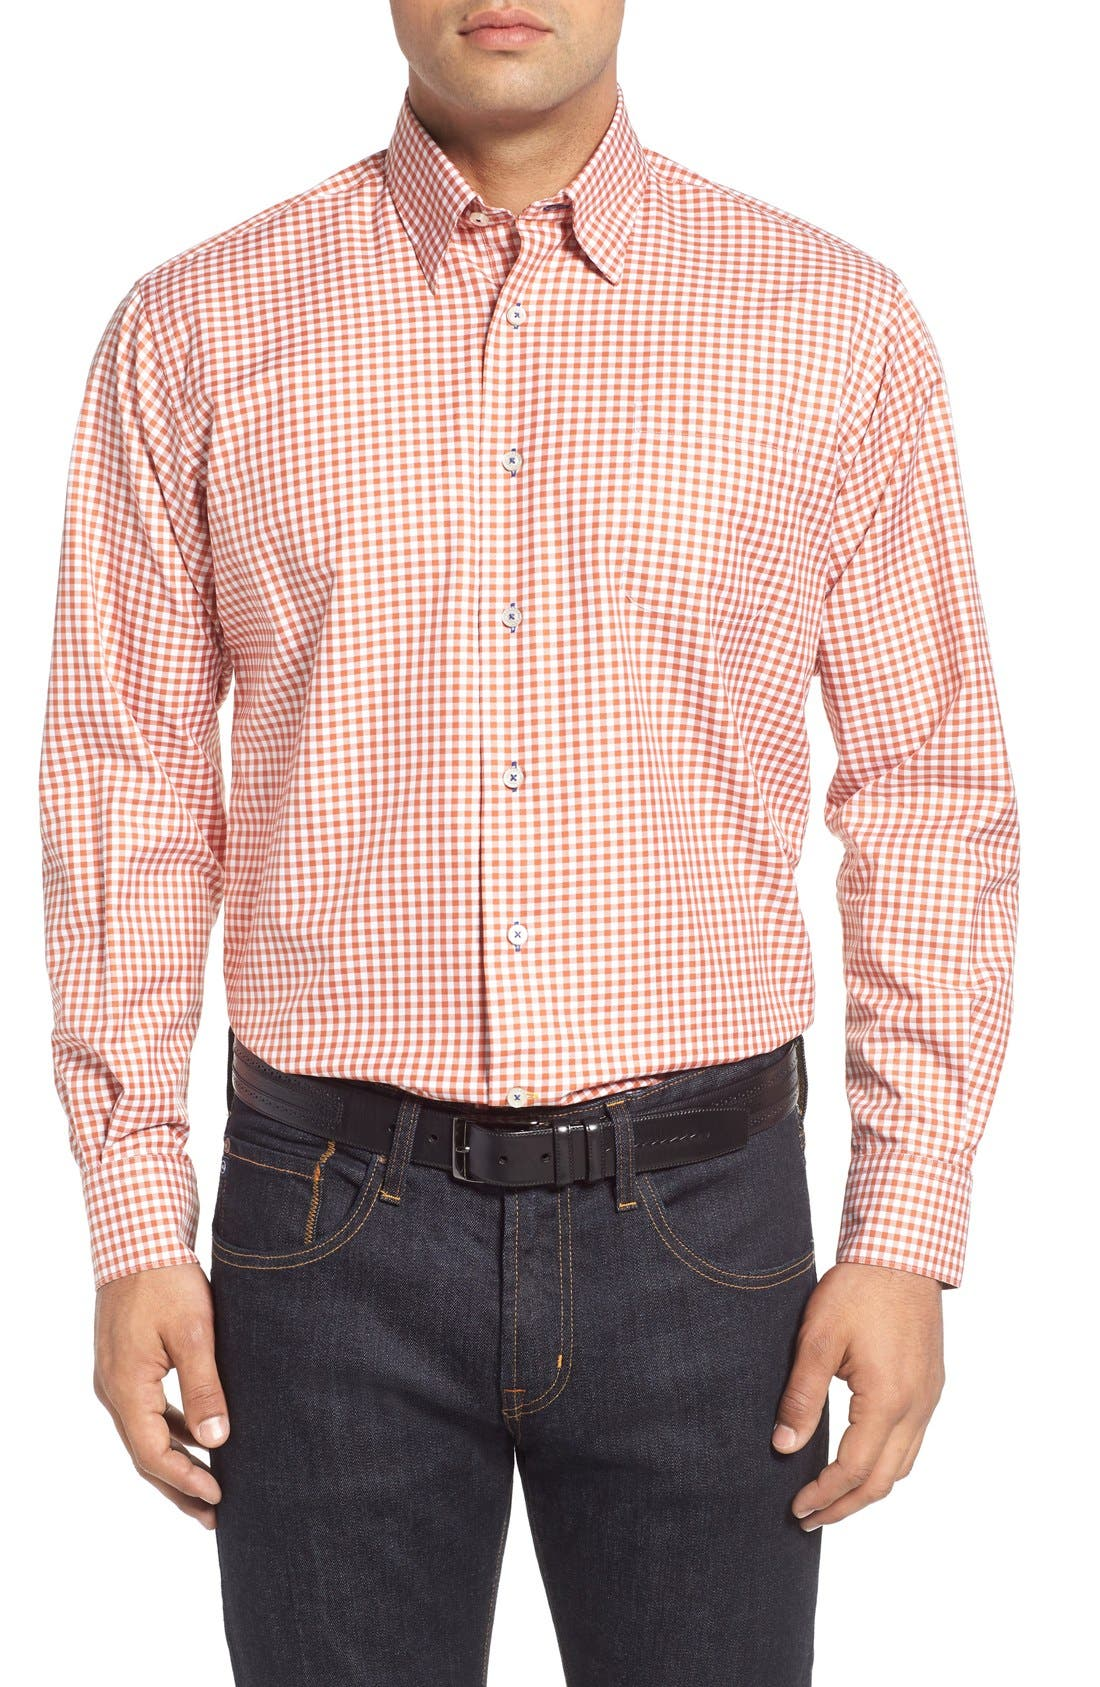 ROBERT TALBOTT 'Anderson' Classic Fit Gingham Sport Shirt in Ember